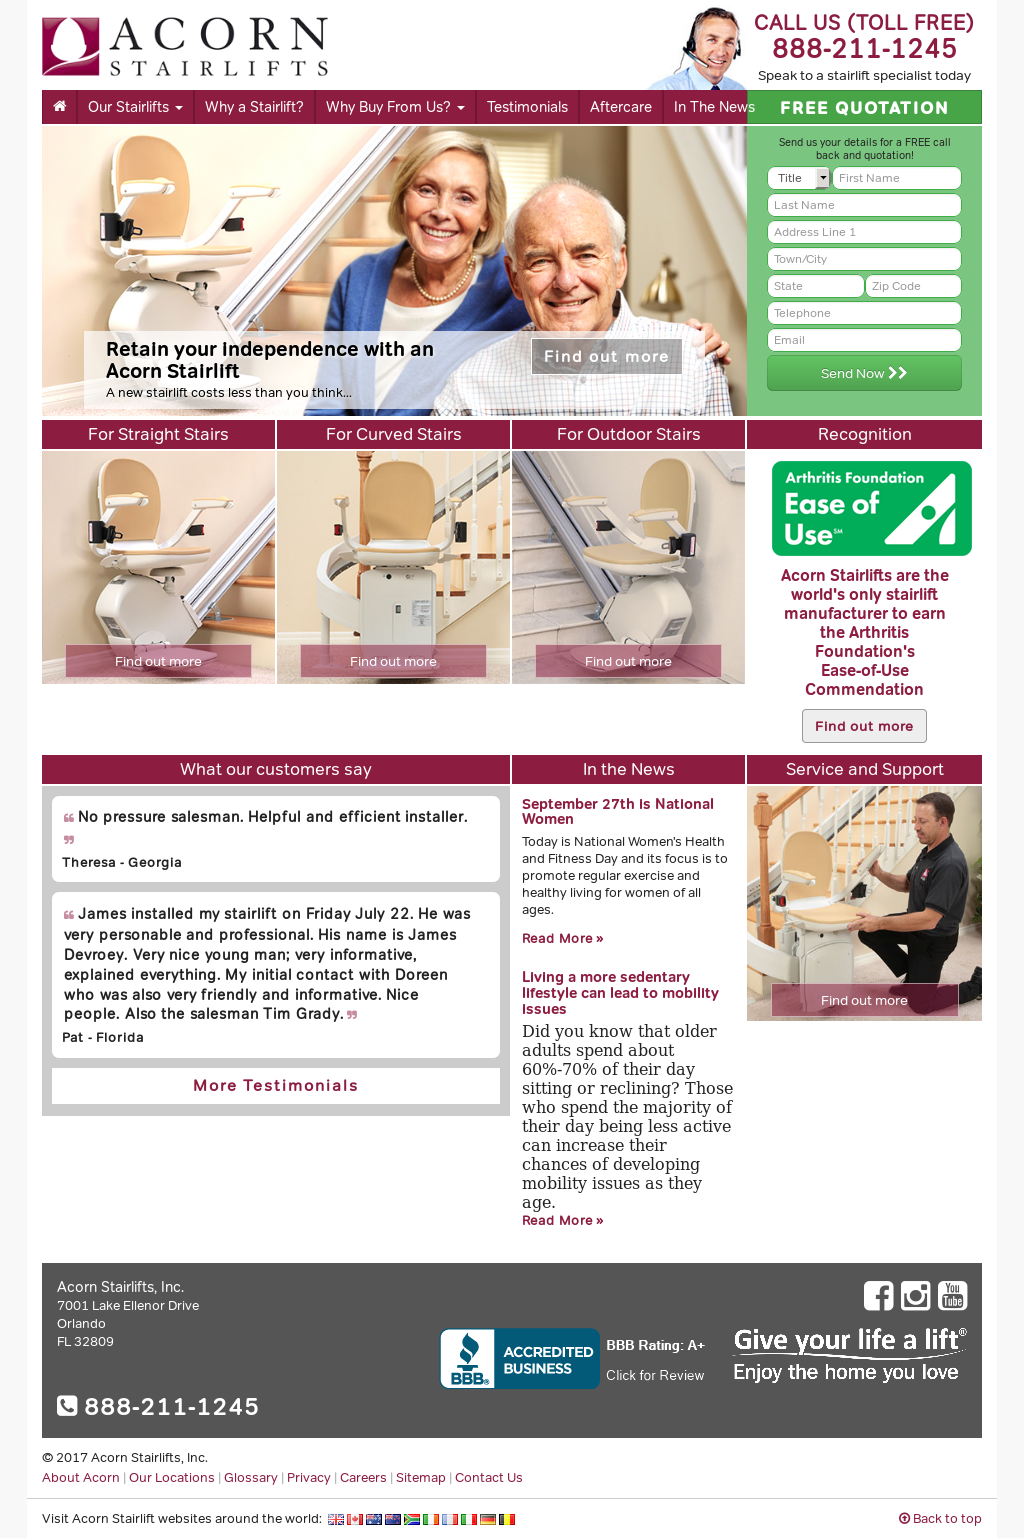 Acorn Stairlifts Website History